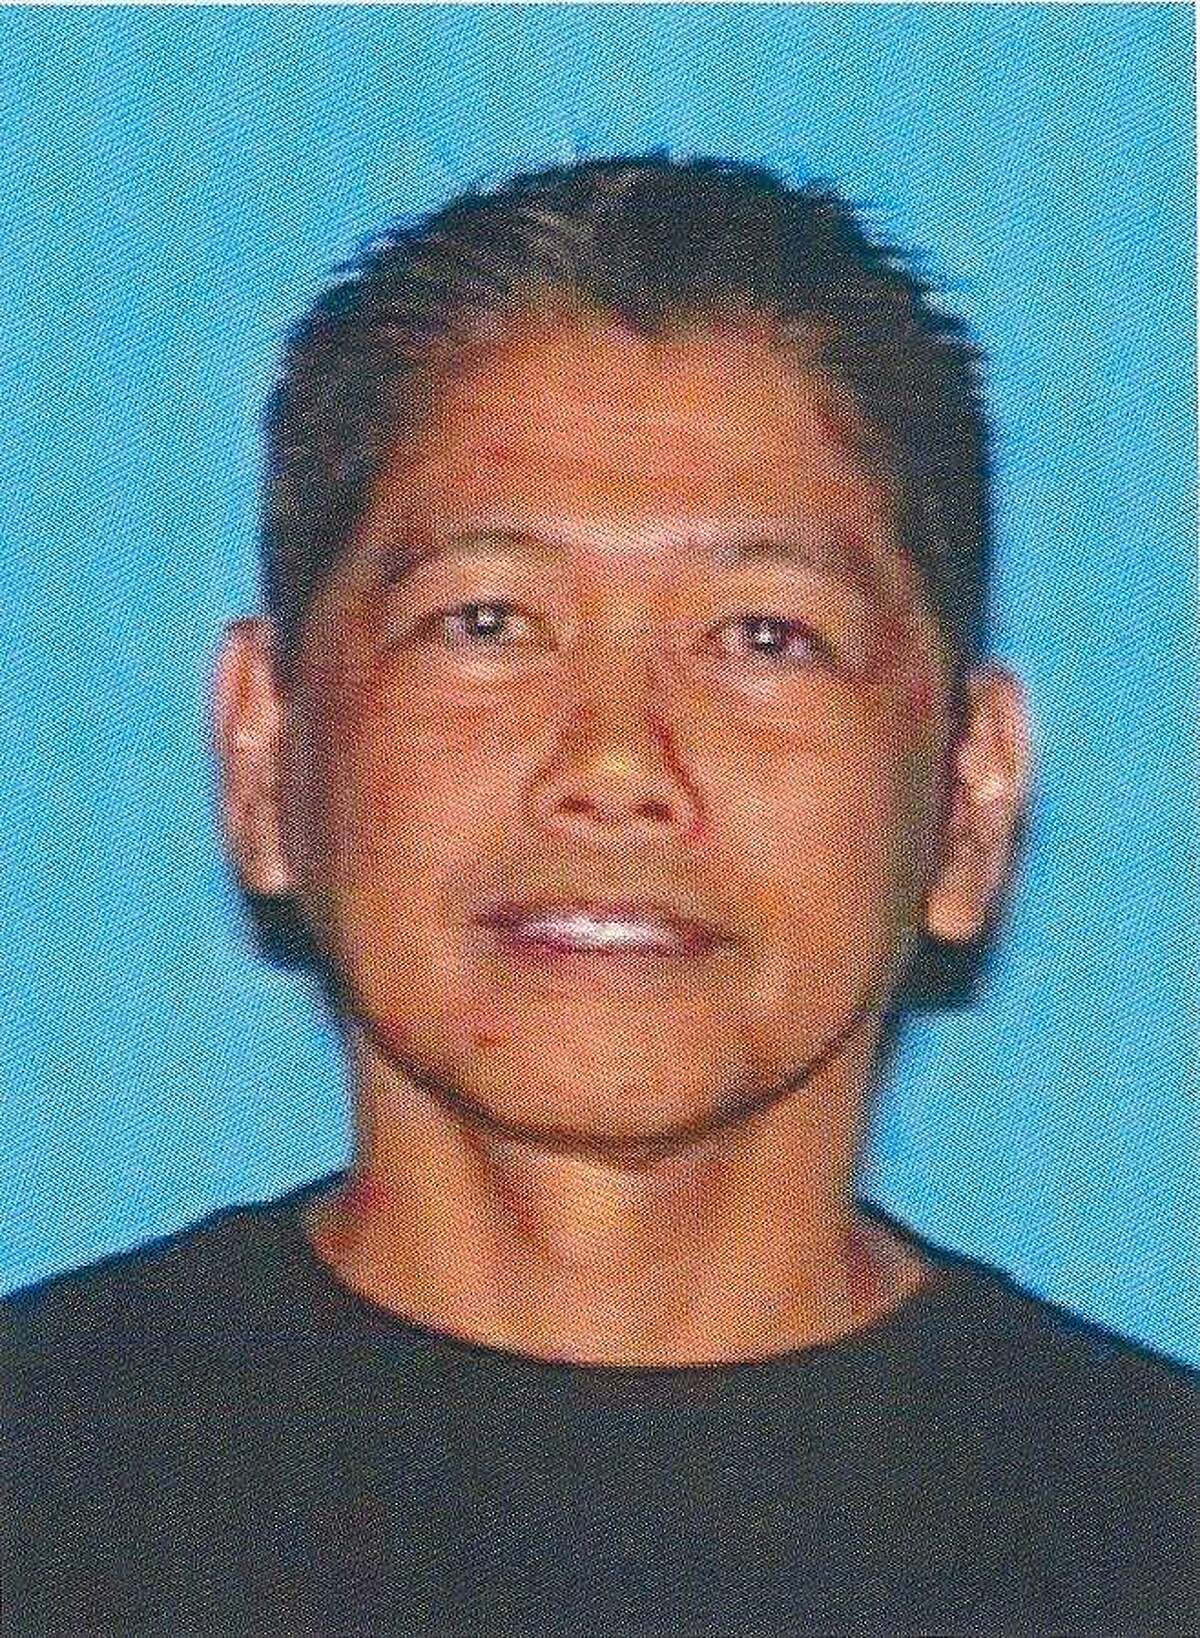 Napoleon Lavarias Caliguiran, 54, of San Jose, who officials say fatally shot his wife and a male companion as they sat in a car in a parking garage at San Jose State University on May 10. Caliguiran then killed himself.